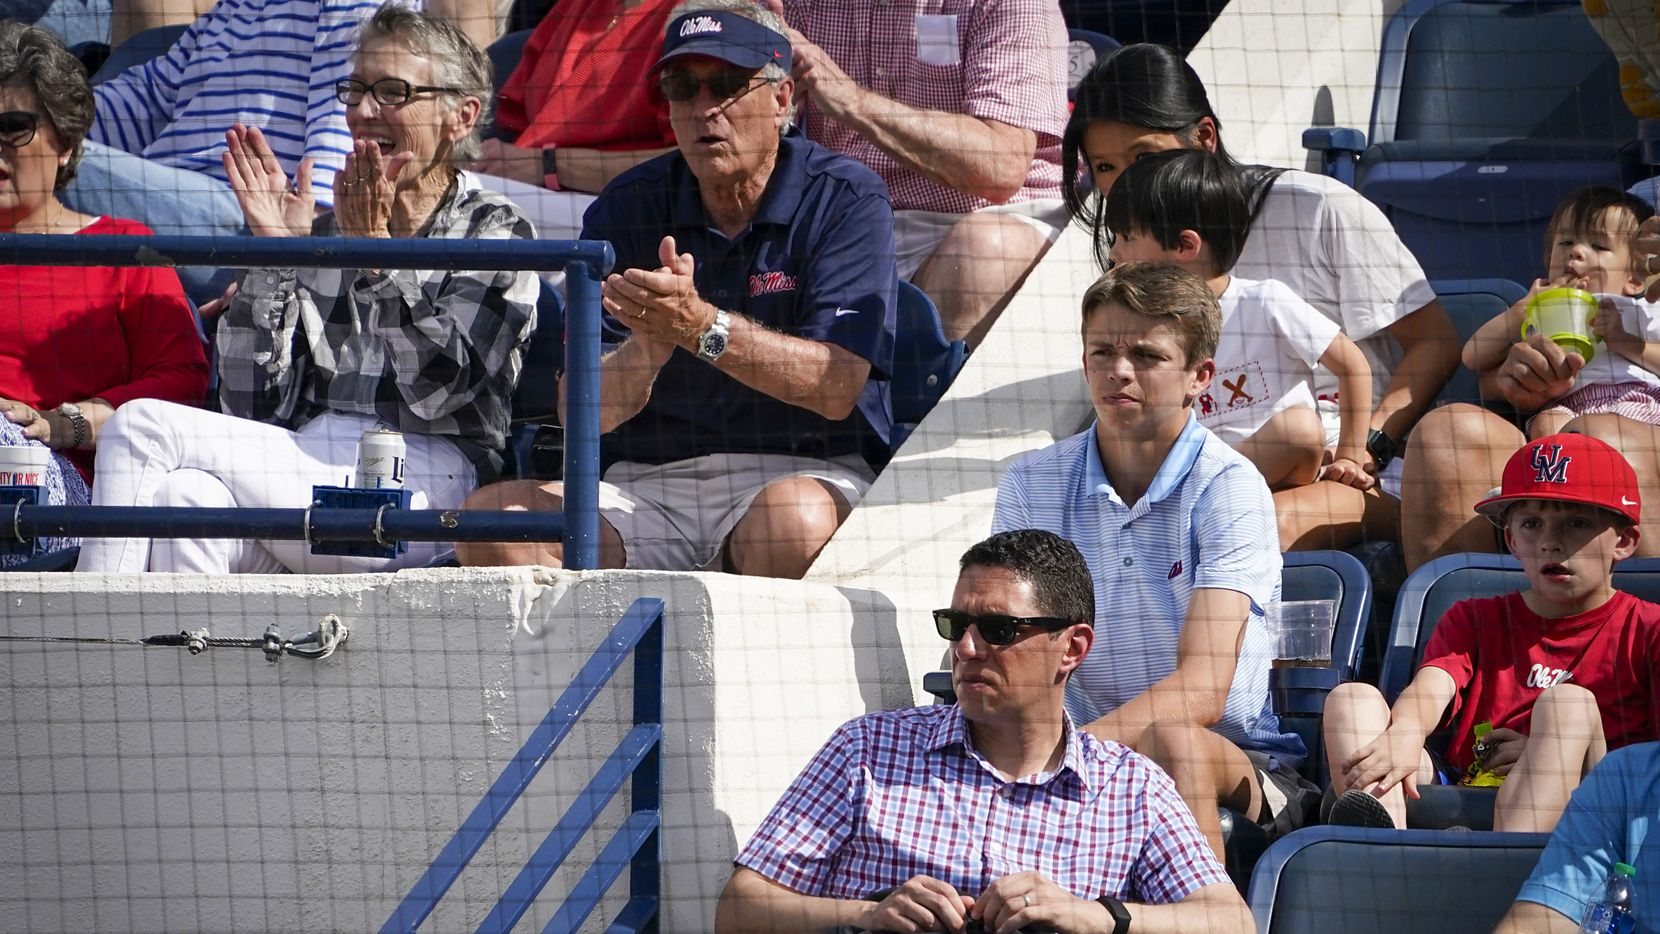 Texas Ranges president, baseball operations, Jon Daniels  watches an NCAA baseball game between Mississippi and Vanderbilt at Swayze Field on Saturday, May 15, 2021, in Oxford, Miss.